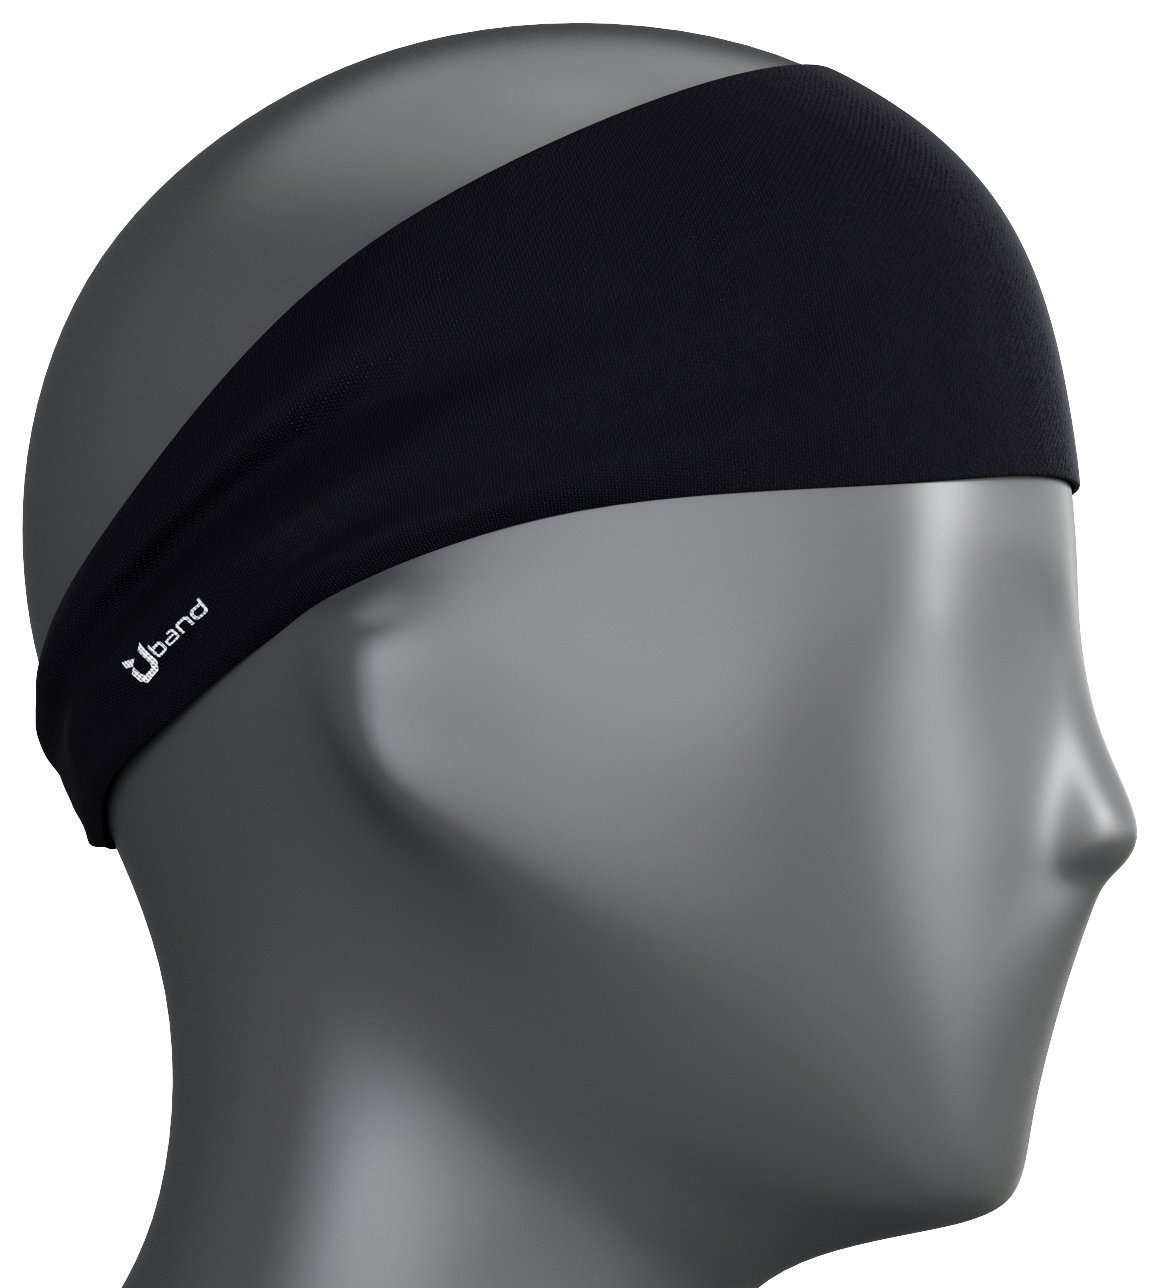 Self Pro Mens Headband - Guys Sweatband & Sports Headband for Running, Cross Training, Racquetball, Working Out - Performance Stretch & Moisture Wicking by Self Pro